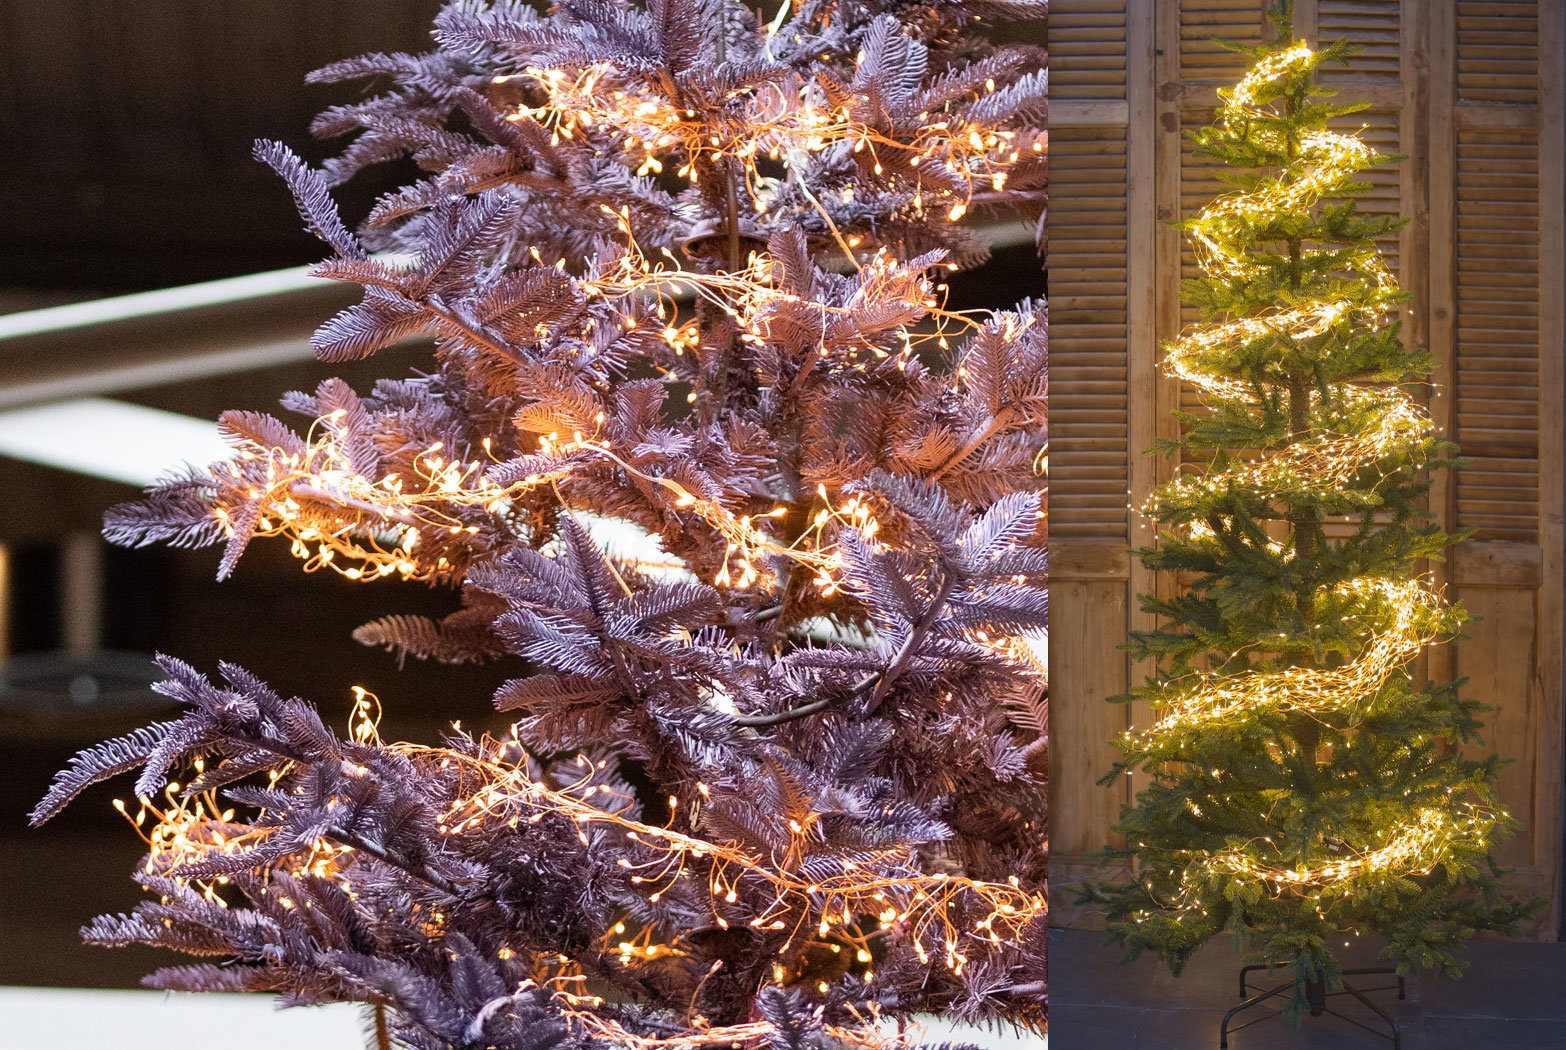 Christmas Tree Lighting Tips From Our